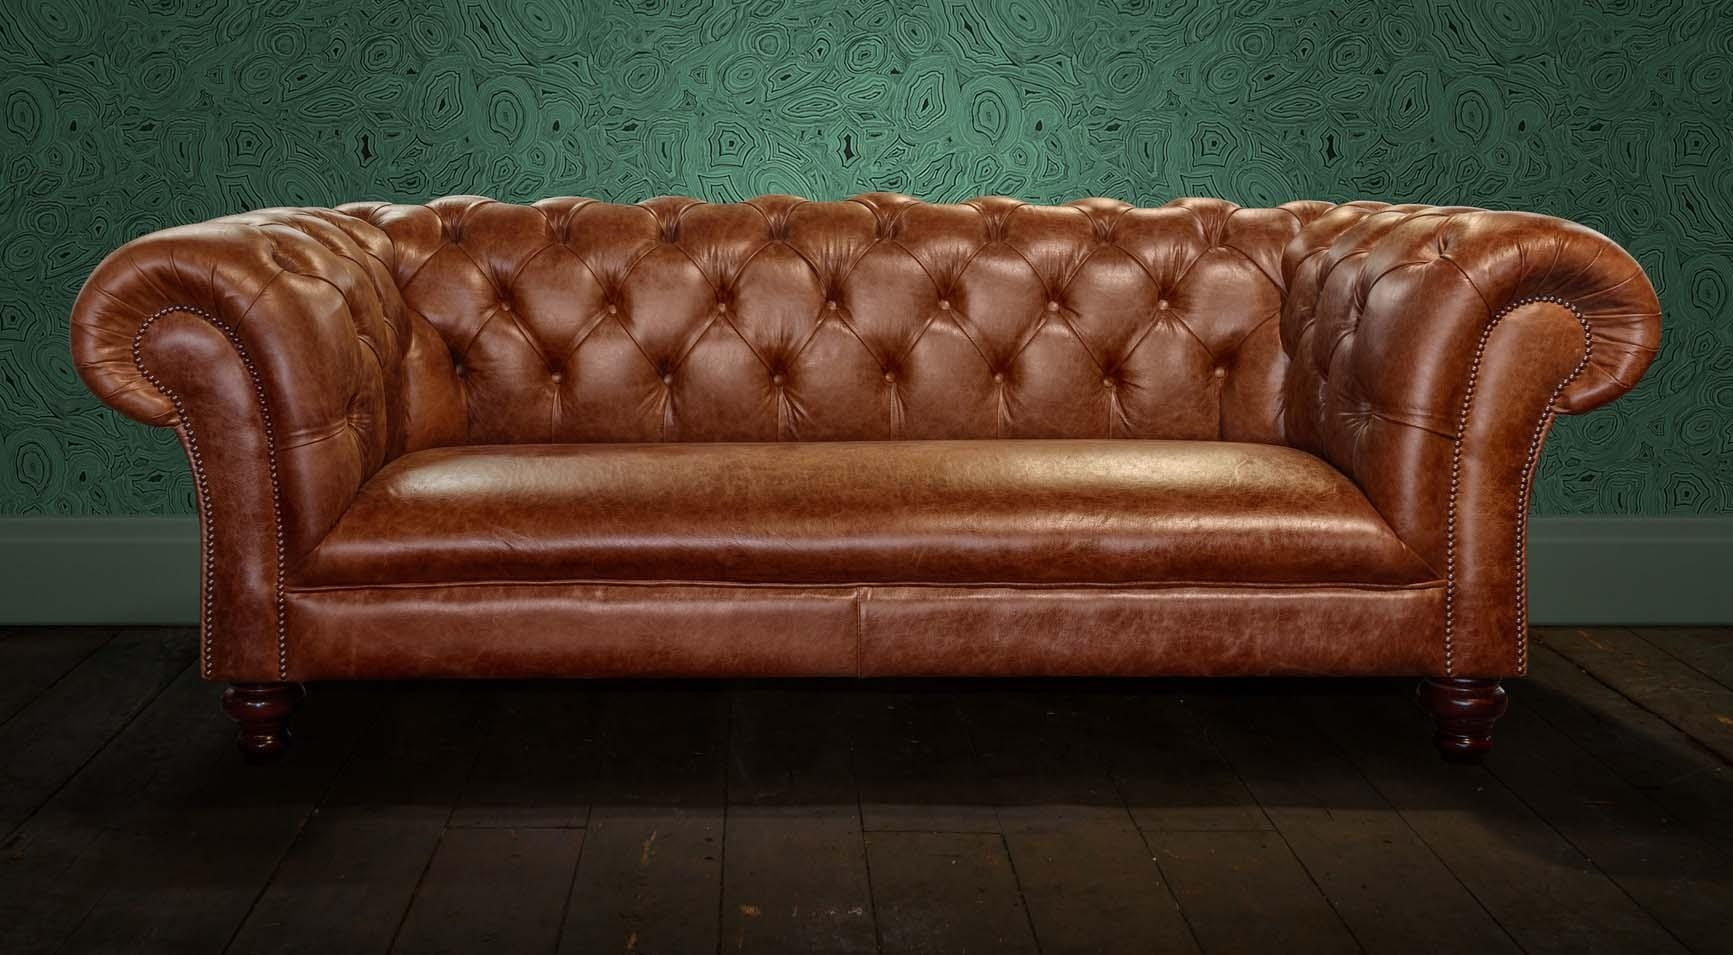 Chesterfields Of England | The Original Chesterfield Company For Chesterfield Sofas (View 6 of 20)